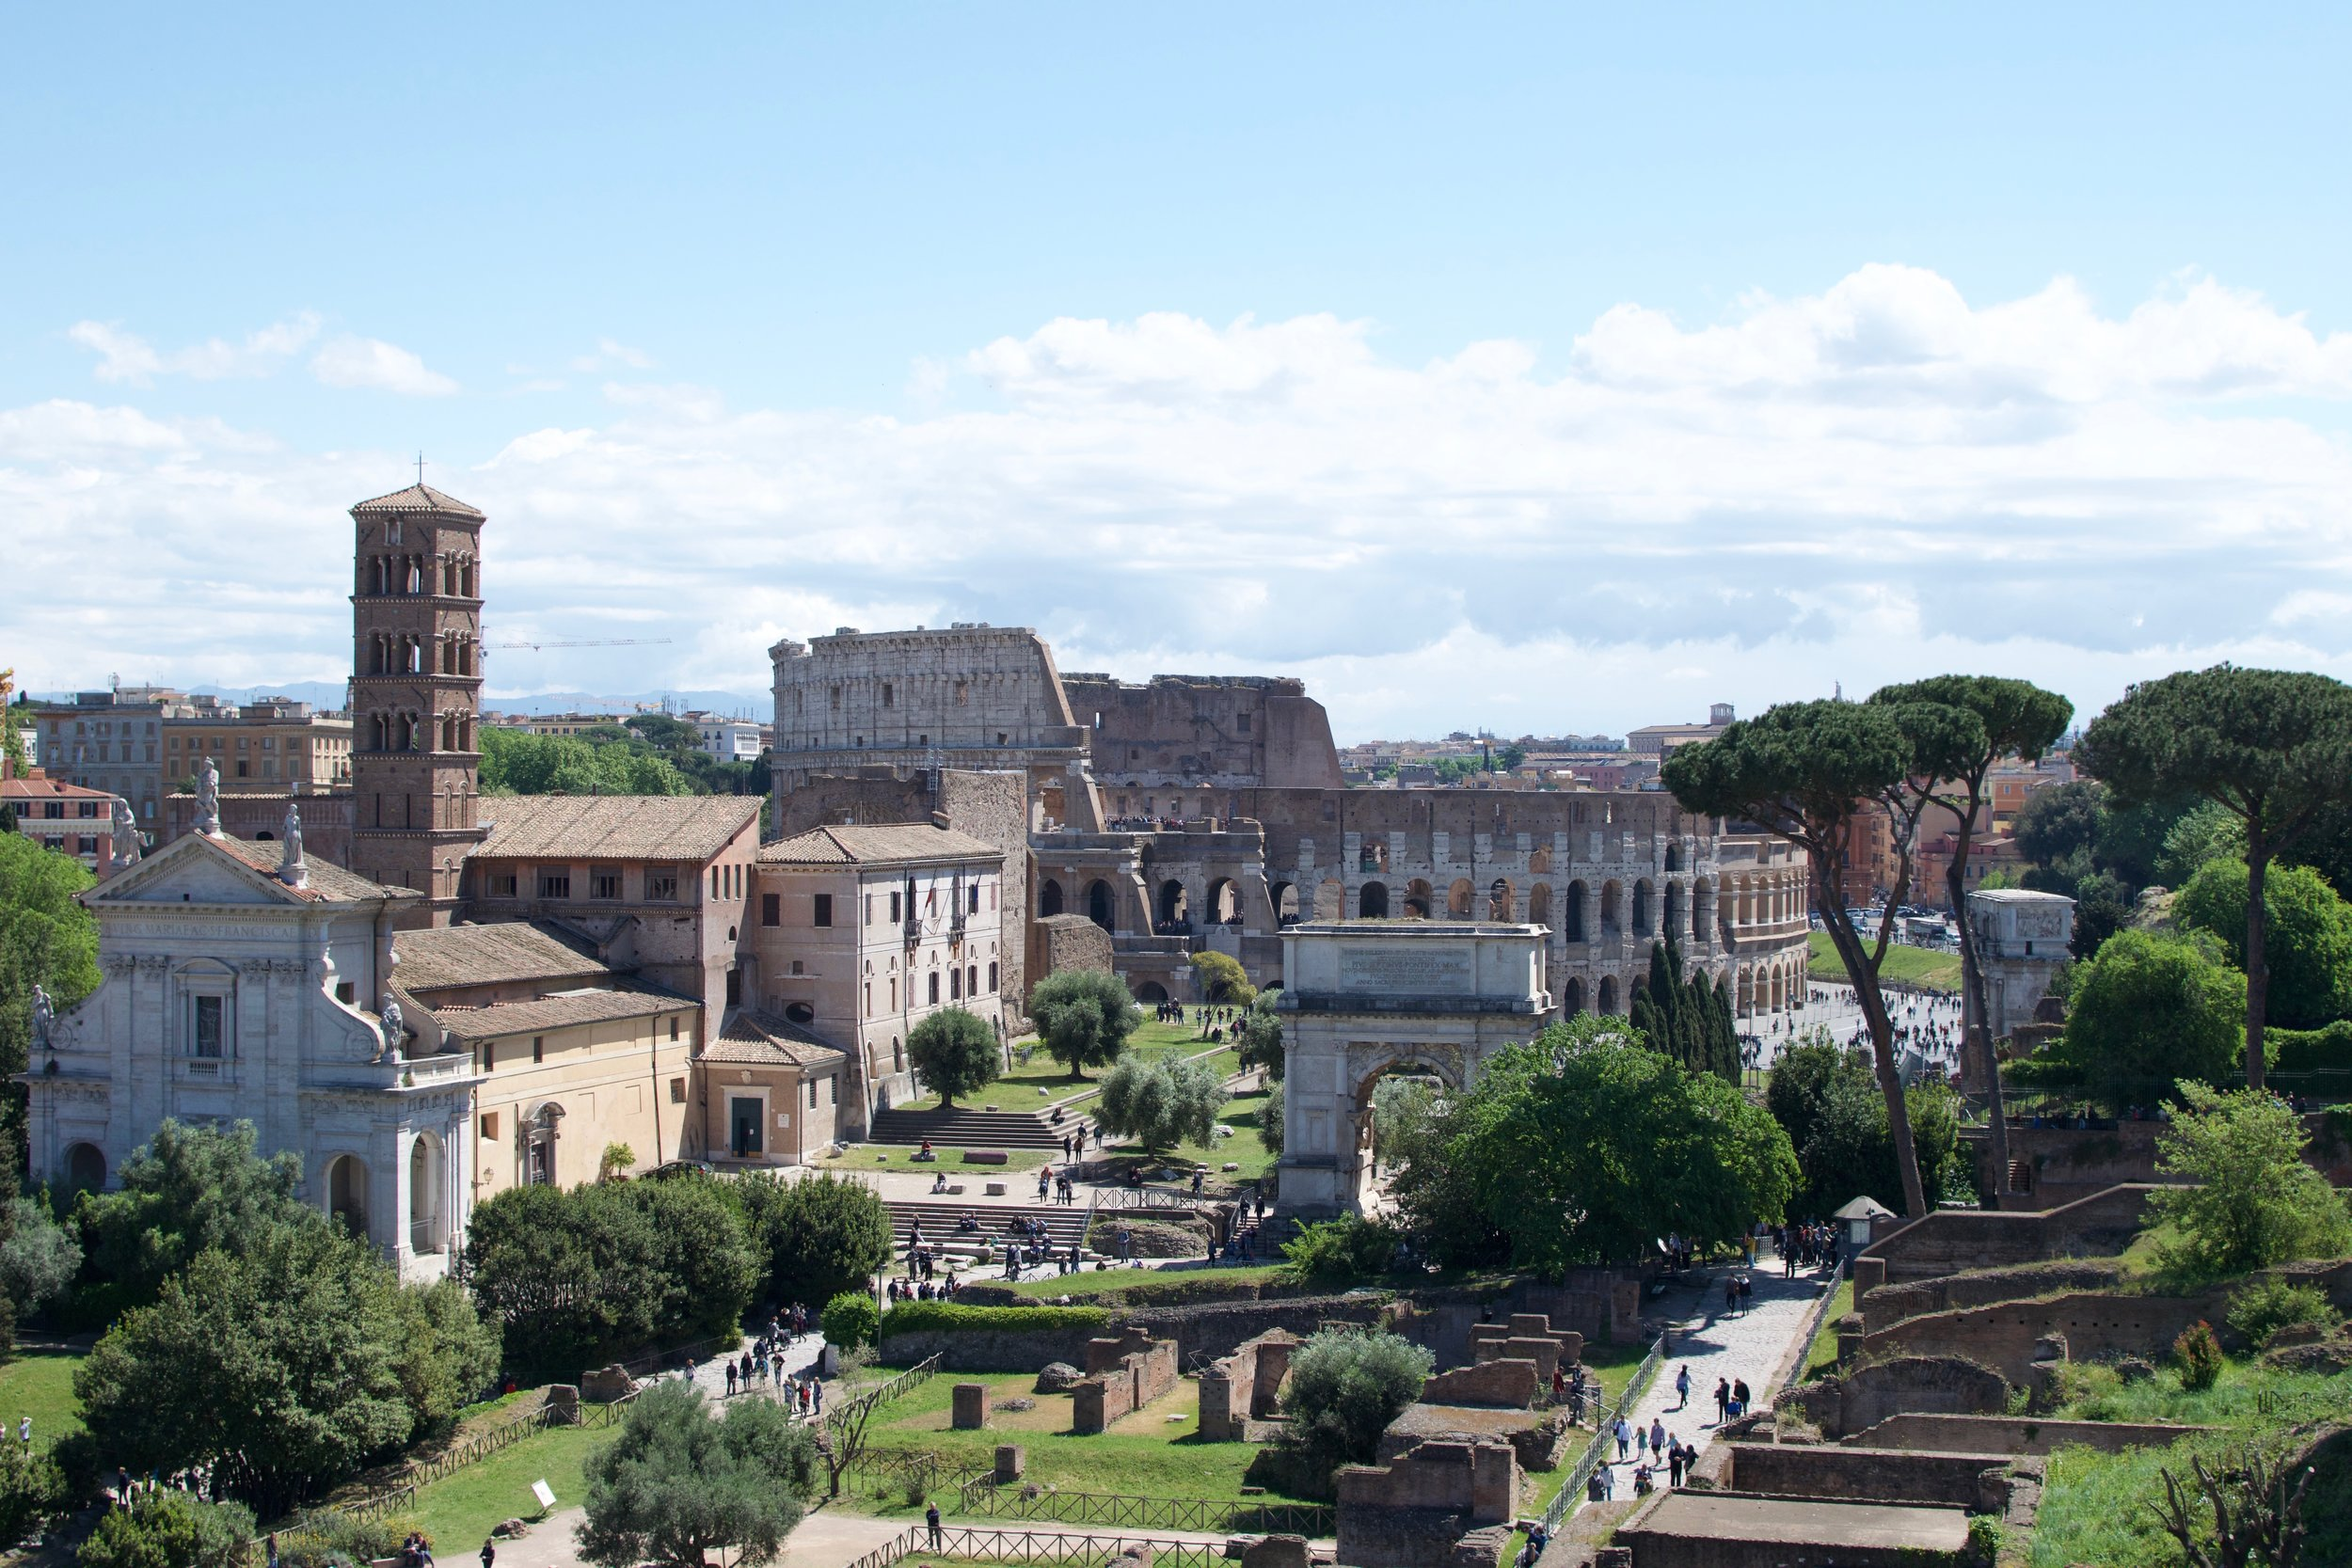 We snapped this photo from the top of the palatine hill. This is currently my computer desktop and I don't want it to ever change.